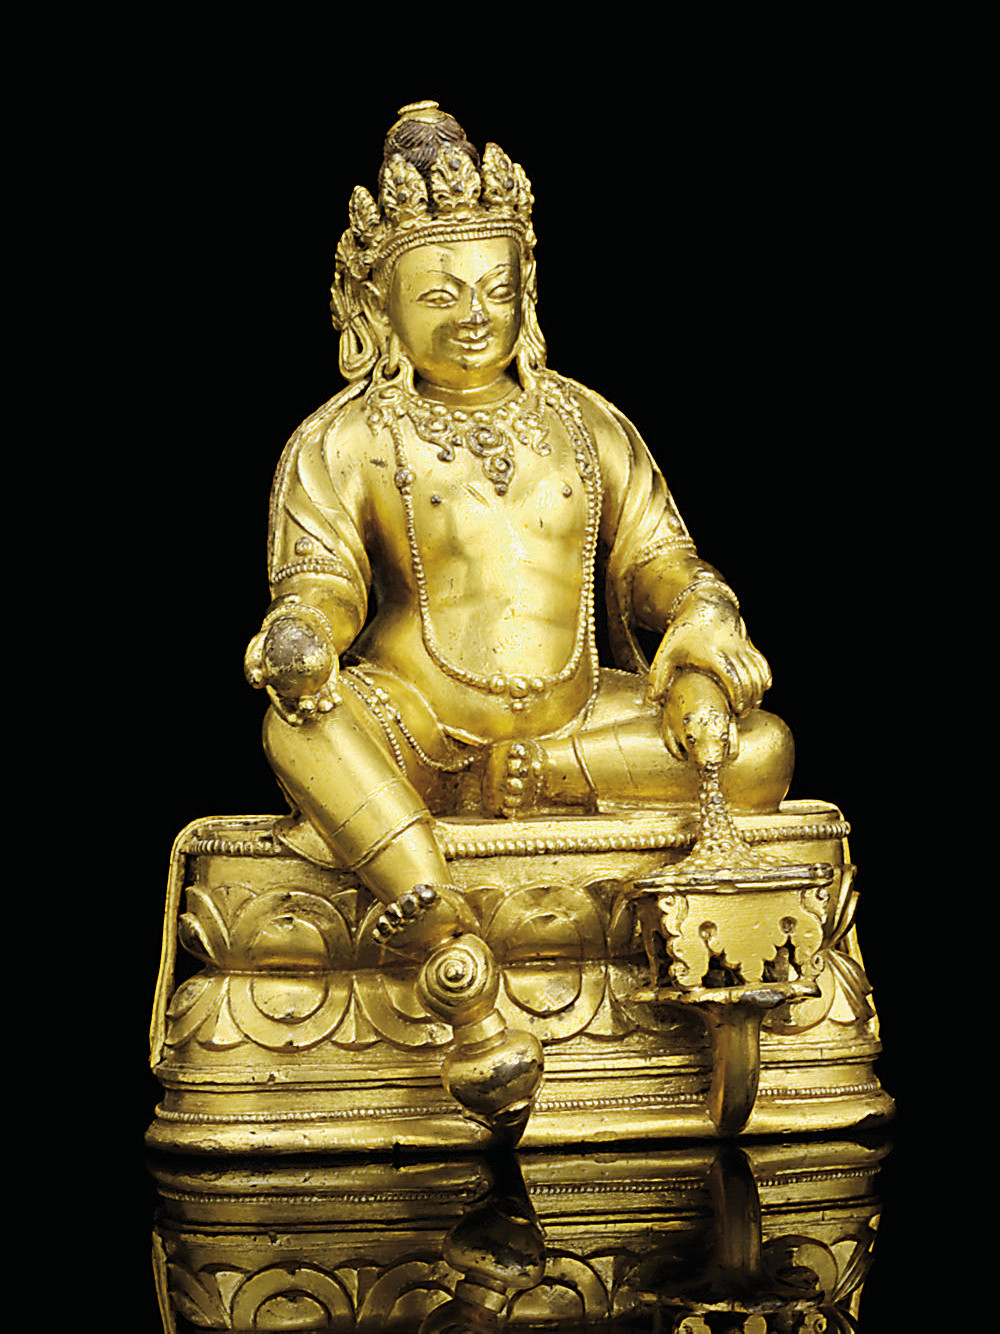 A MONGOLIAN GILT-BRONZE FIGURE